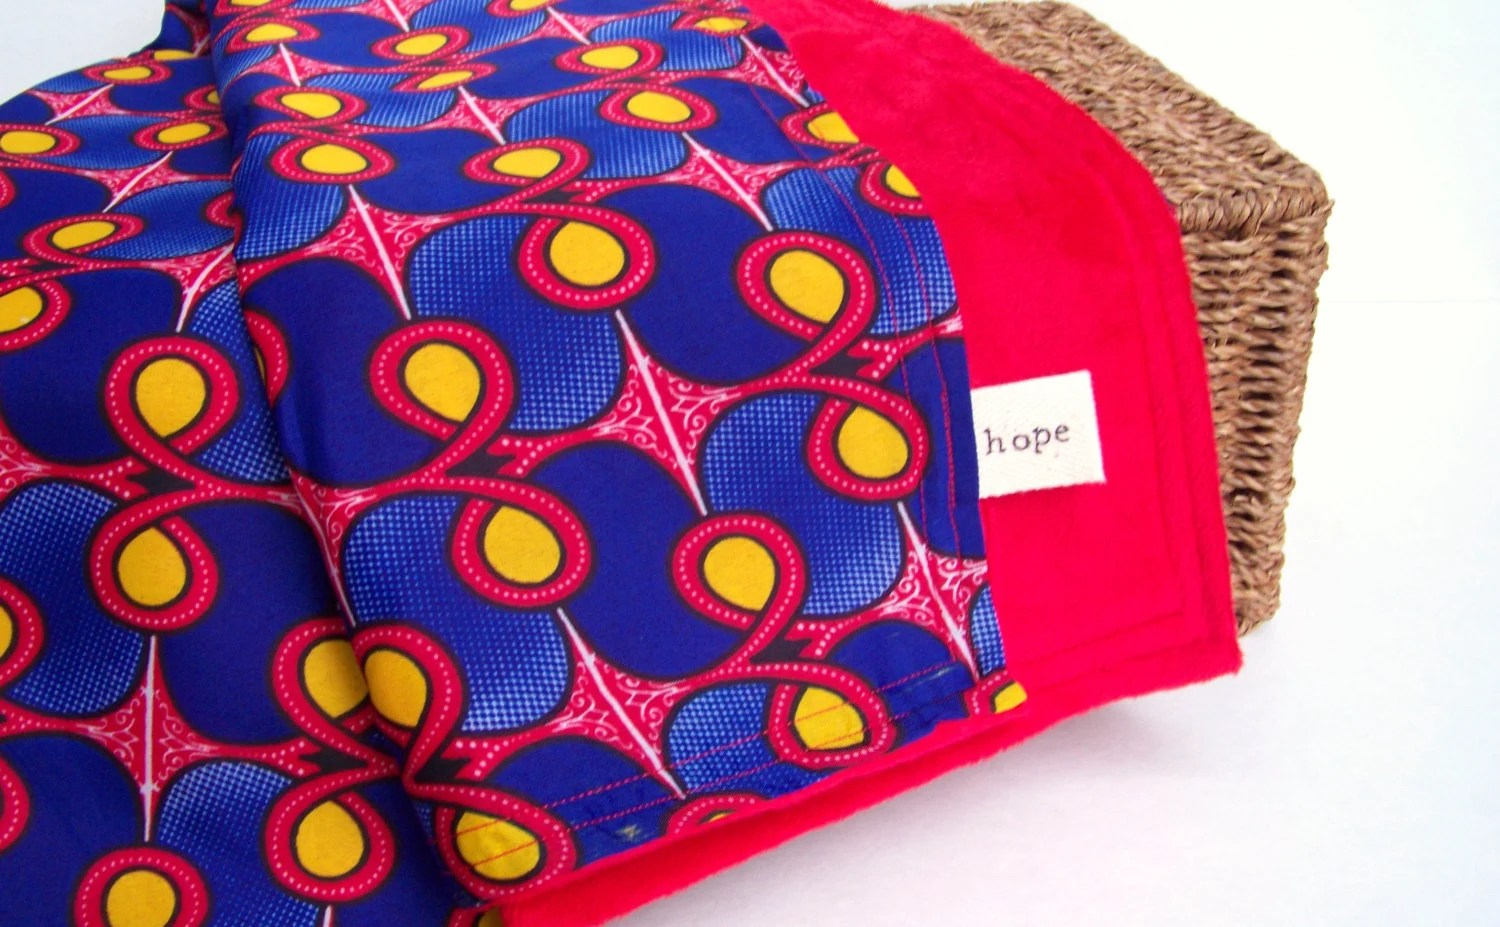 Superman African Baby Blanket Wax Print Fabric Toddler Congo Adoption Fundraiser